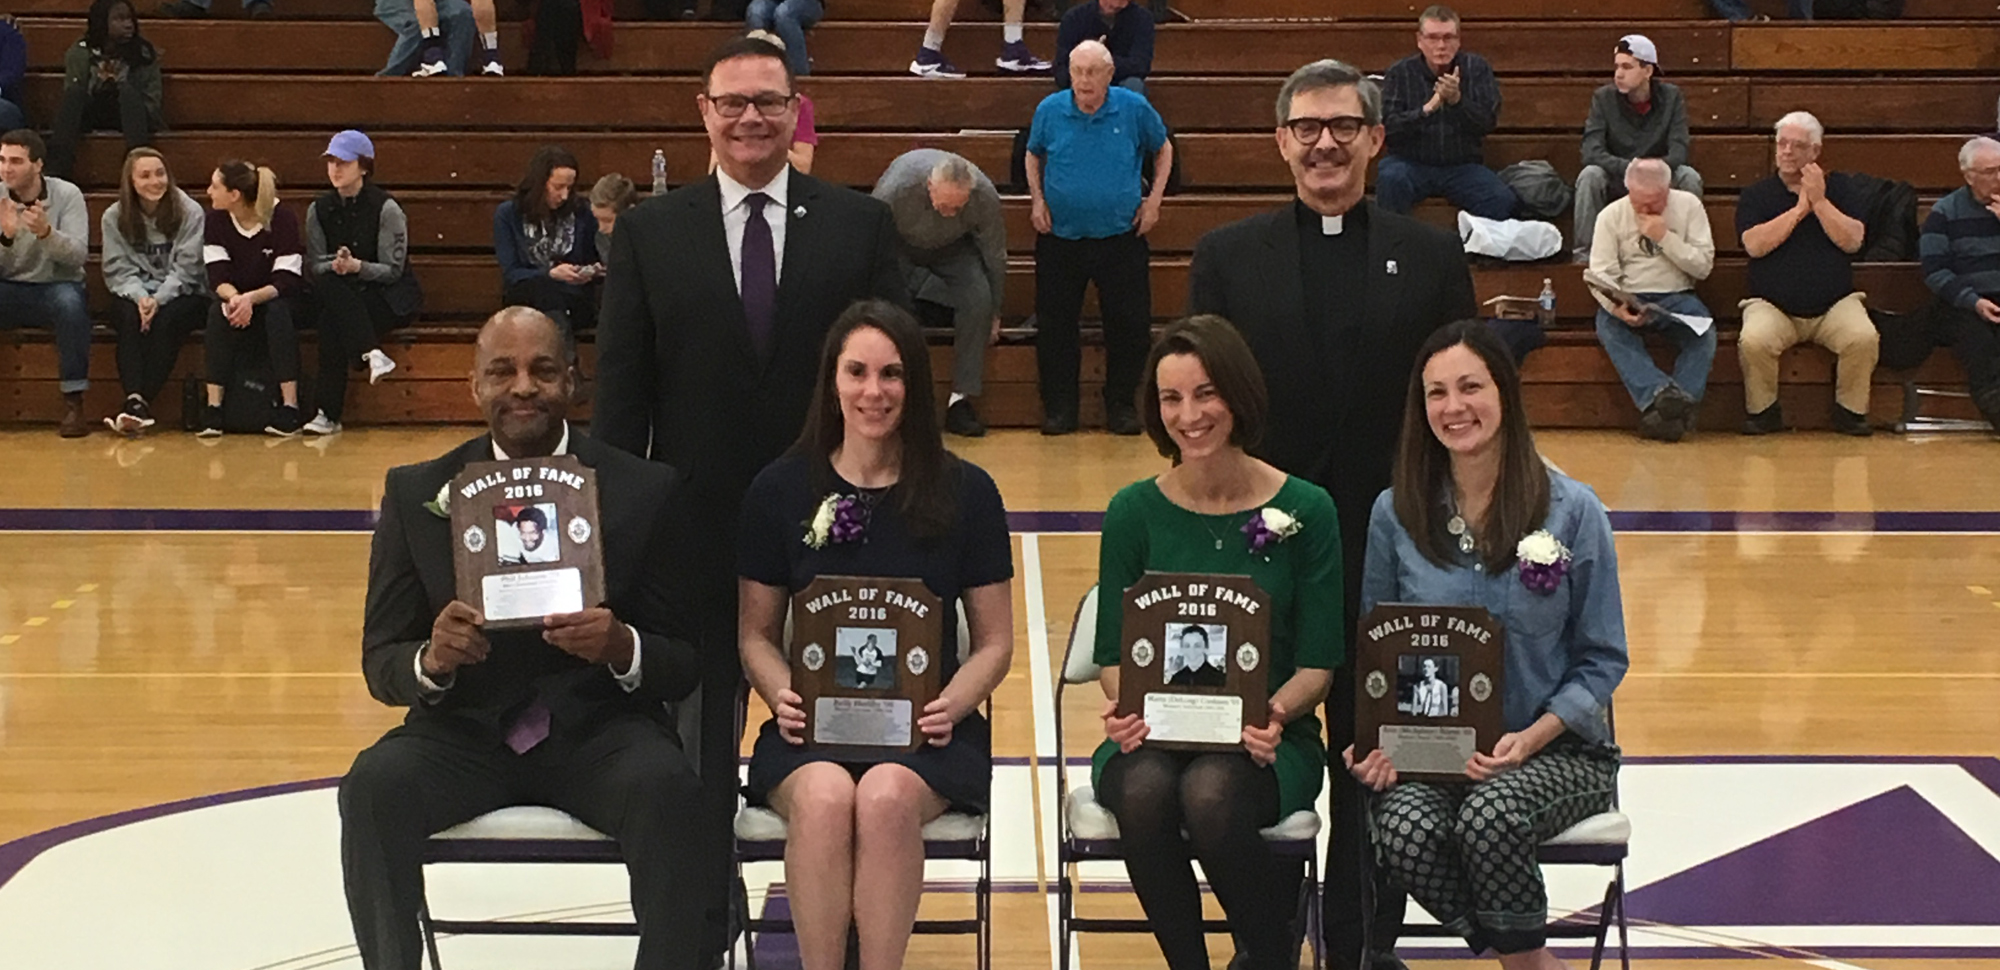 The University inducted the Wall of Fame Class of 2016 during a ceremony in the Long Center on Saturday. The inductees are, seated from left, Phil Johnson '78, Kelly Herlihy '06, Marta (DeLong) Cookson '05, and Erin (Michalisin) Beirne '03. Standing are athletics director Dave Martin and Rev. Kevin P. Quinn, president of the University.